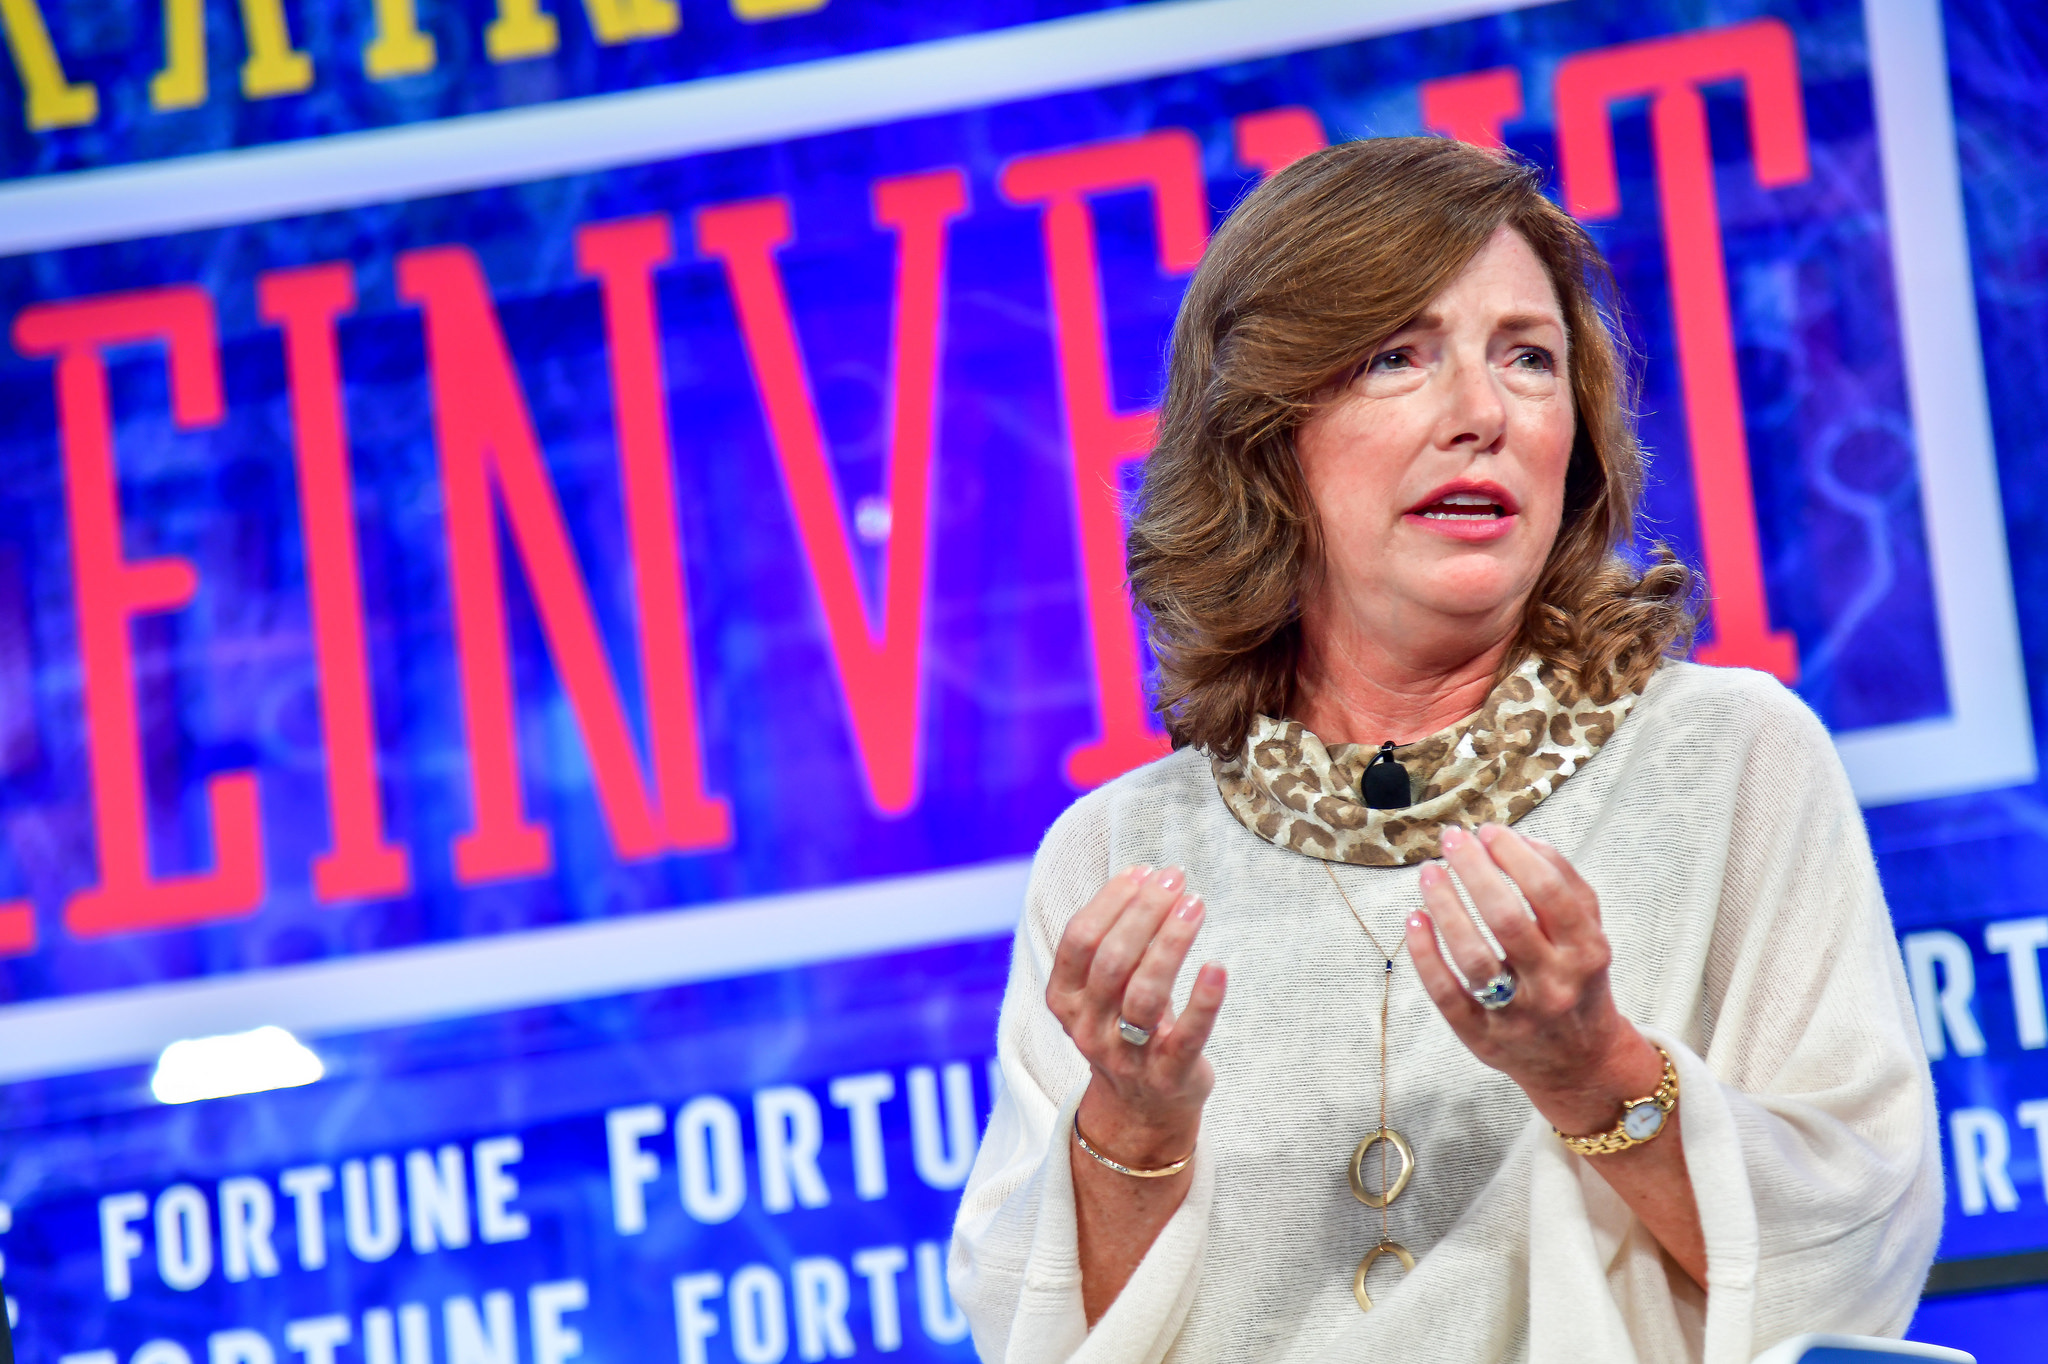 Siemens U.S. CEO Barbara Humpton at the Fortune Brainstorm Reinvent Conference in Chicago on Sept. 24, 2018.